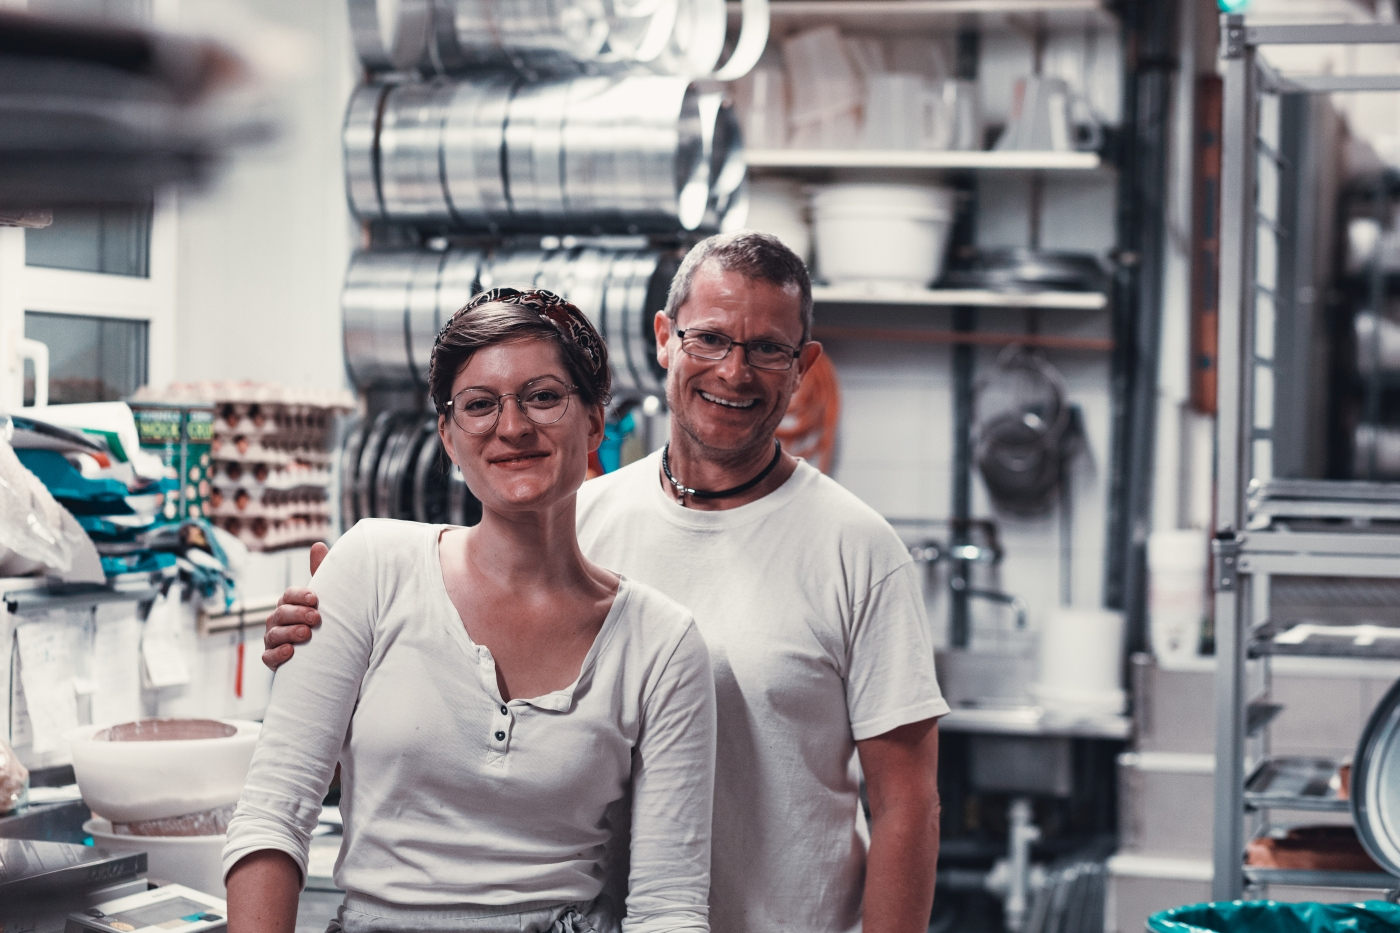 Work Portrait made in Munich featuring the Portrait, Actor, Headshot and Business photographer Daniel Schubert and employees of a local bakery.